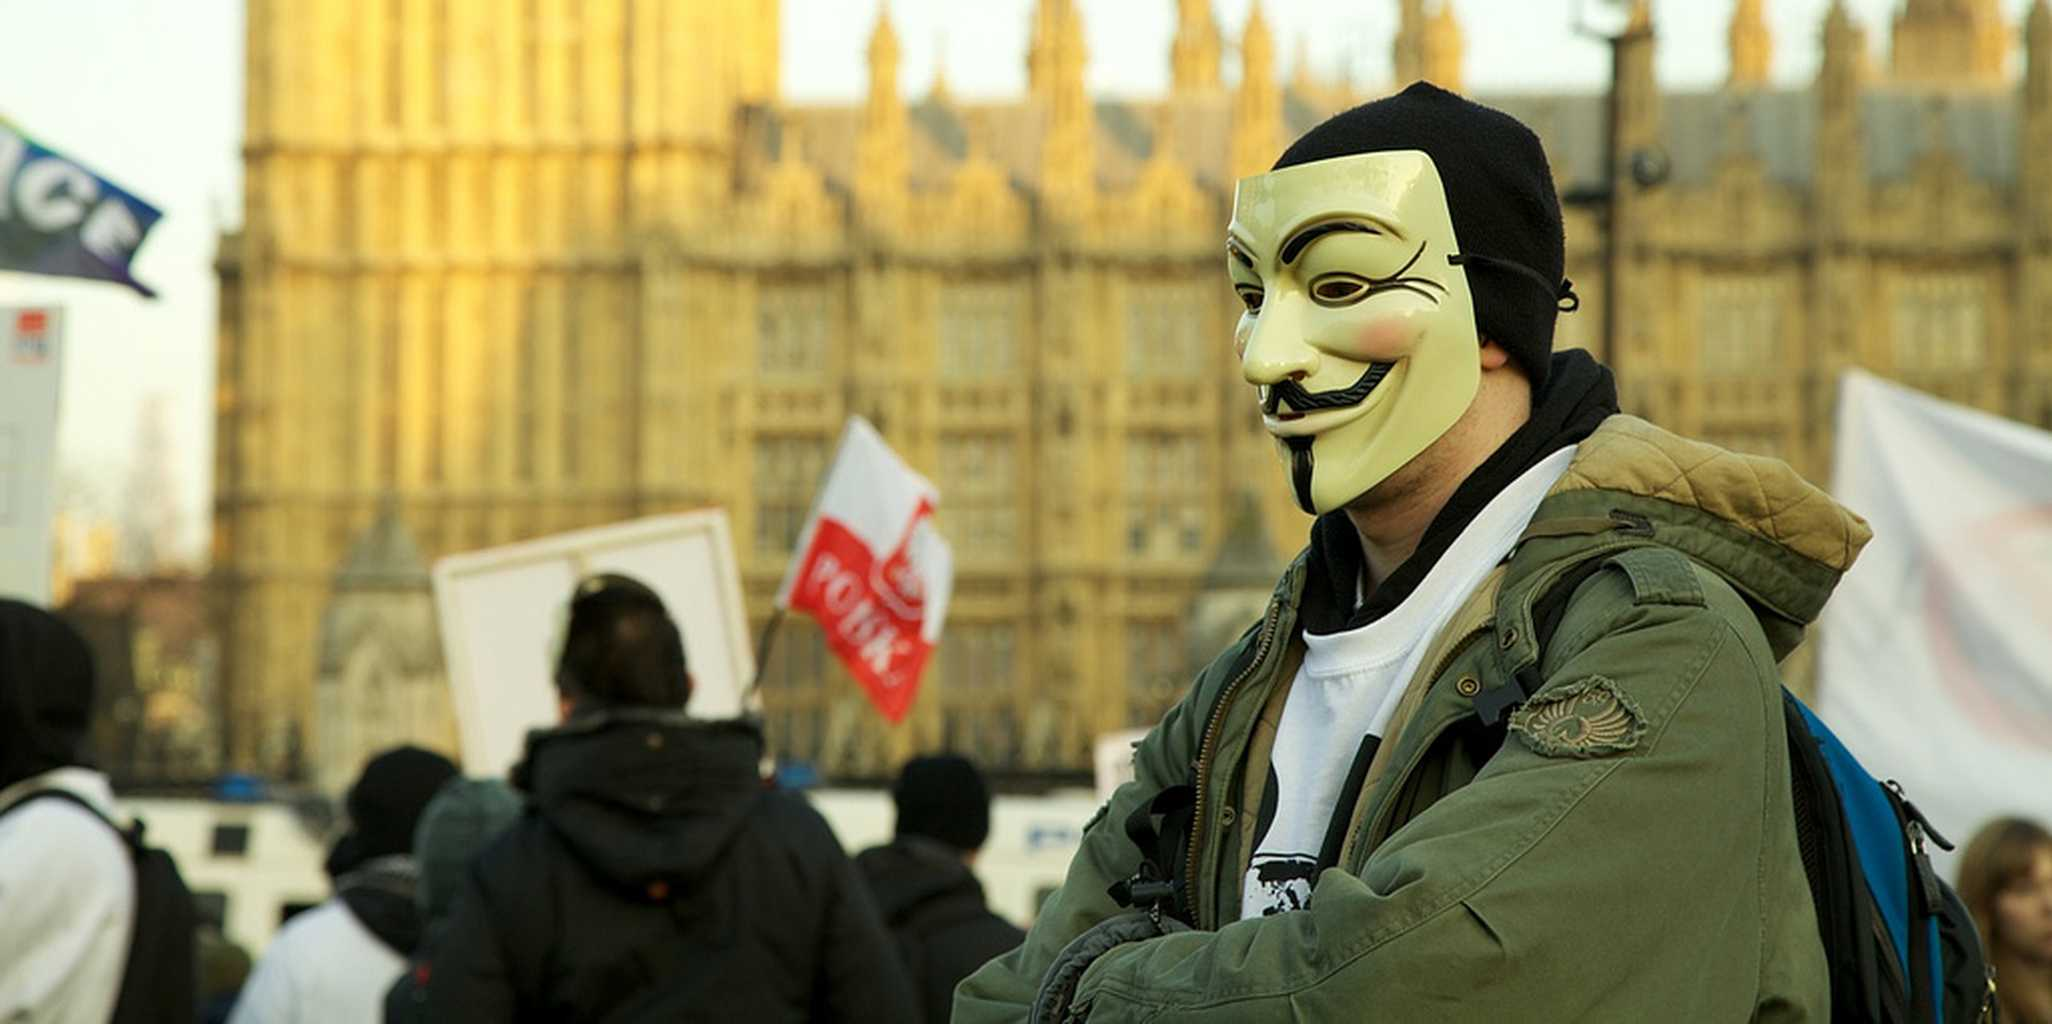 All sizes | Anonymous VS ACTA | Flickr - Photo Sharing!